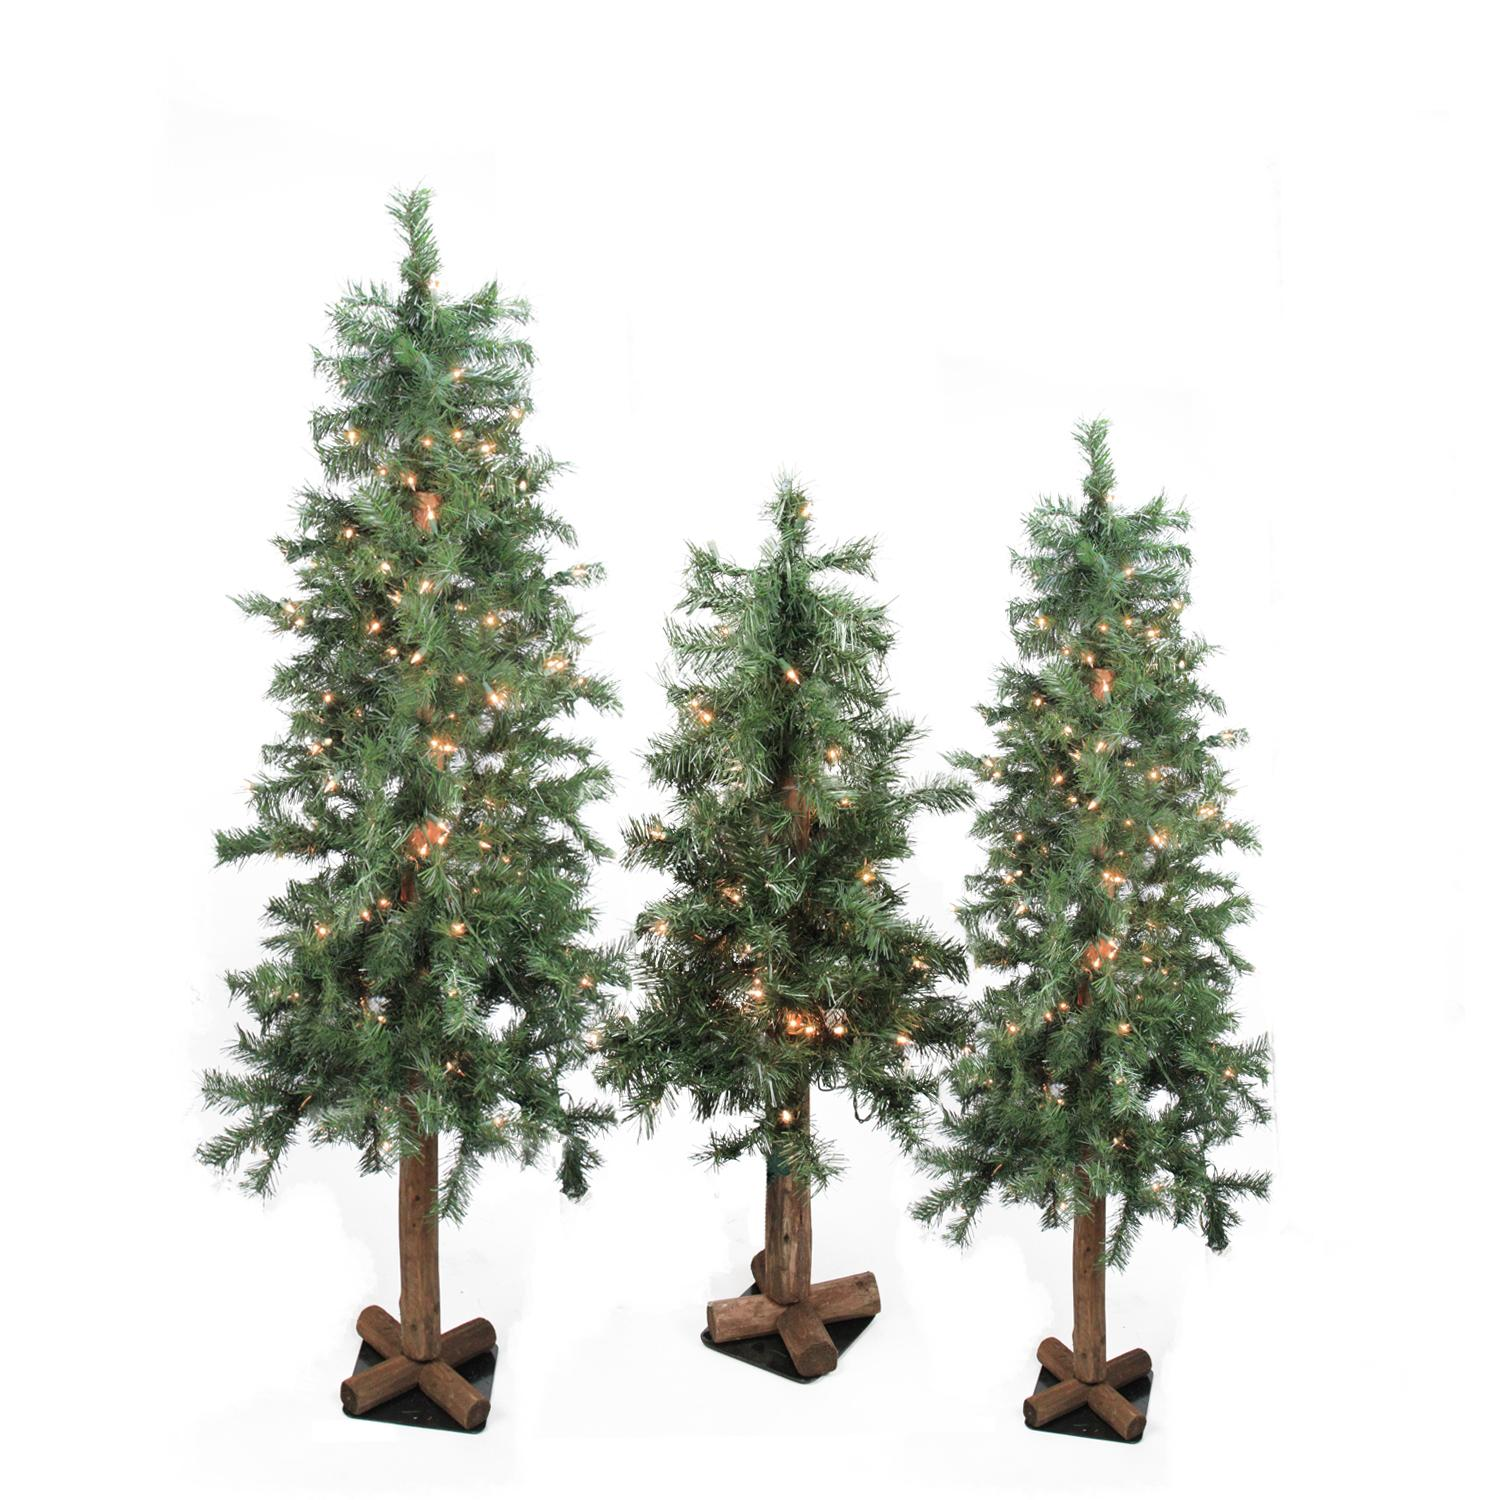 Set of 3 Pre-Lit Woodland Alpine Artificial Christmas Trees 4', 5' and 6' - Clear